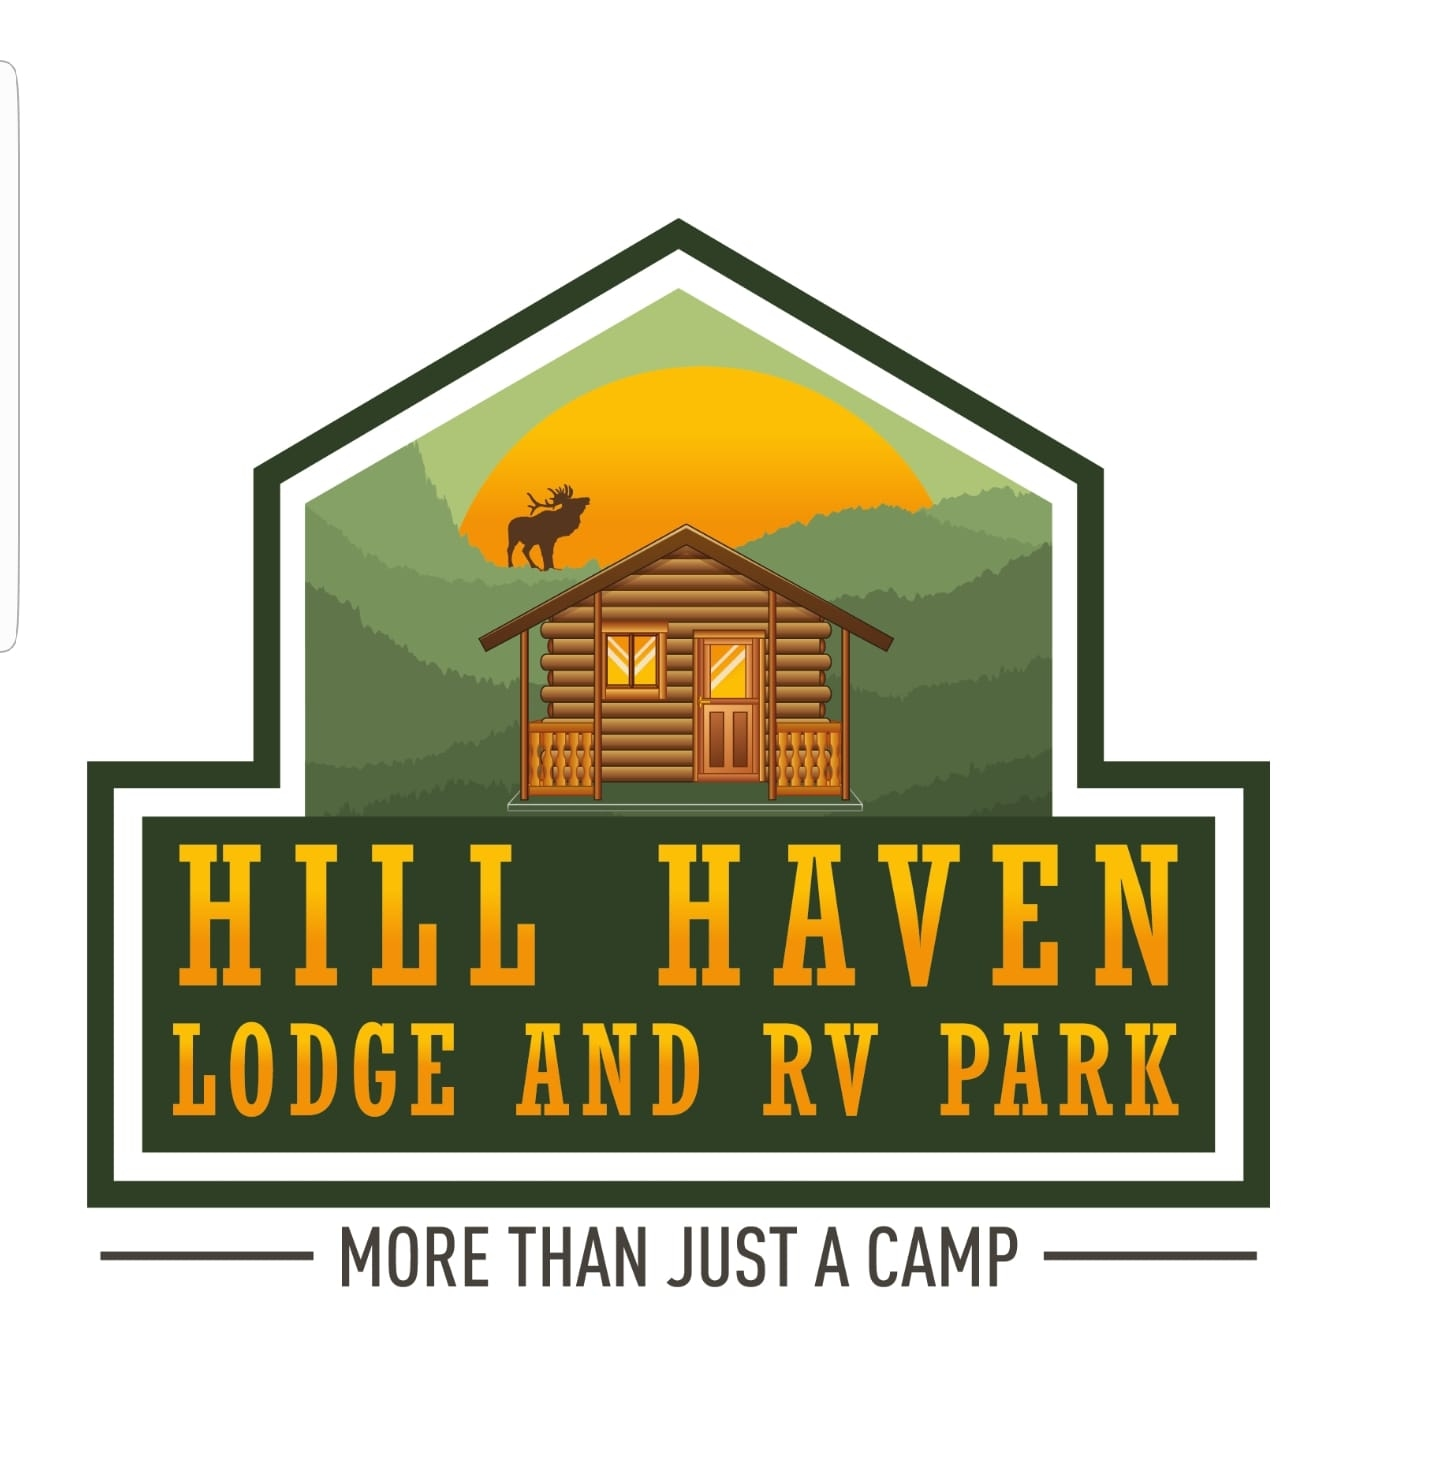 Hill Haven Lodge and RV Park logo